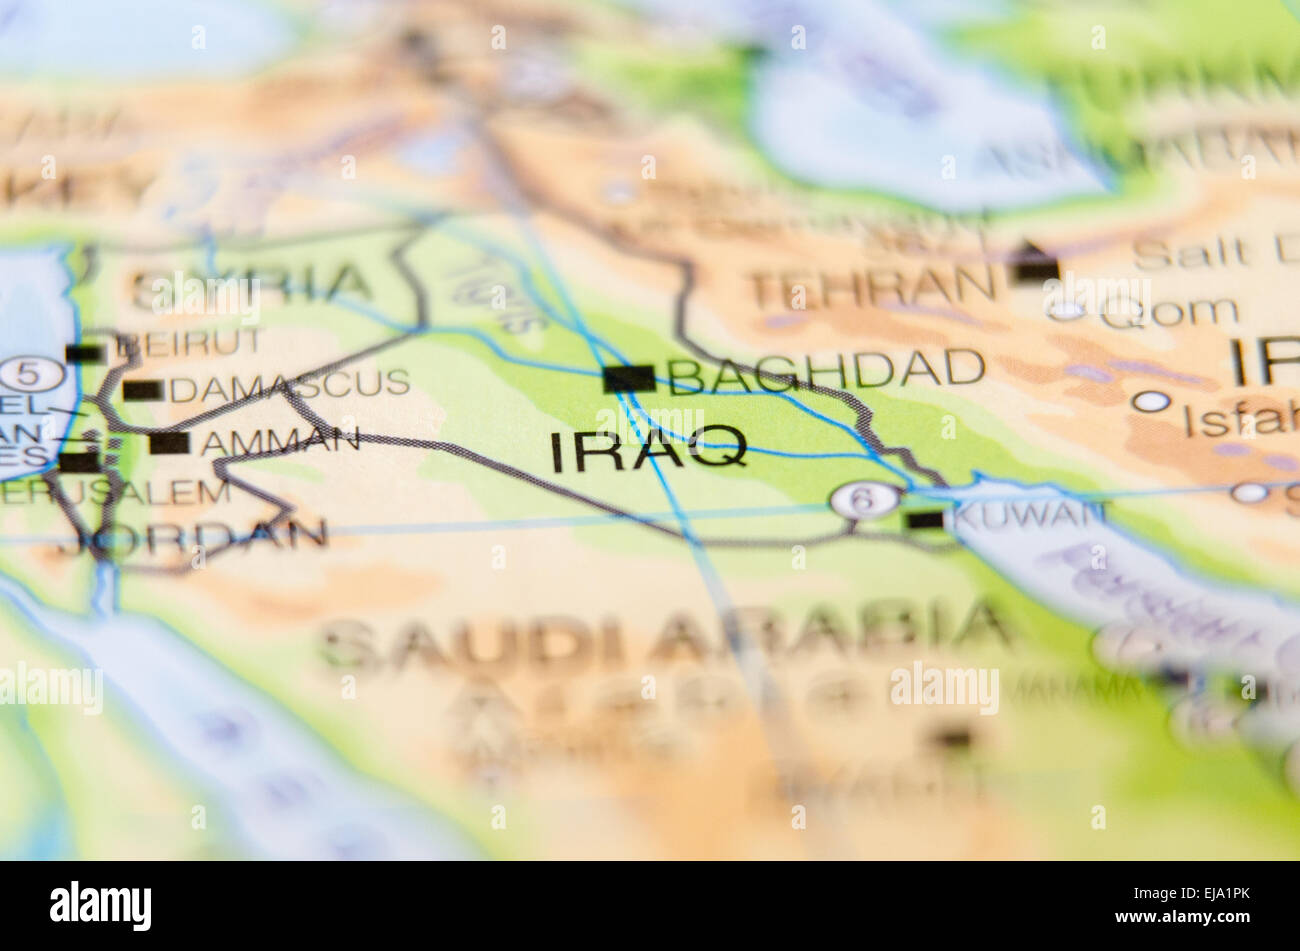 Iraq country on map stock photo 80126219 alamy iraq country on map gumiabroncs Choice Image